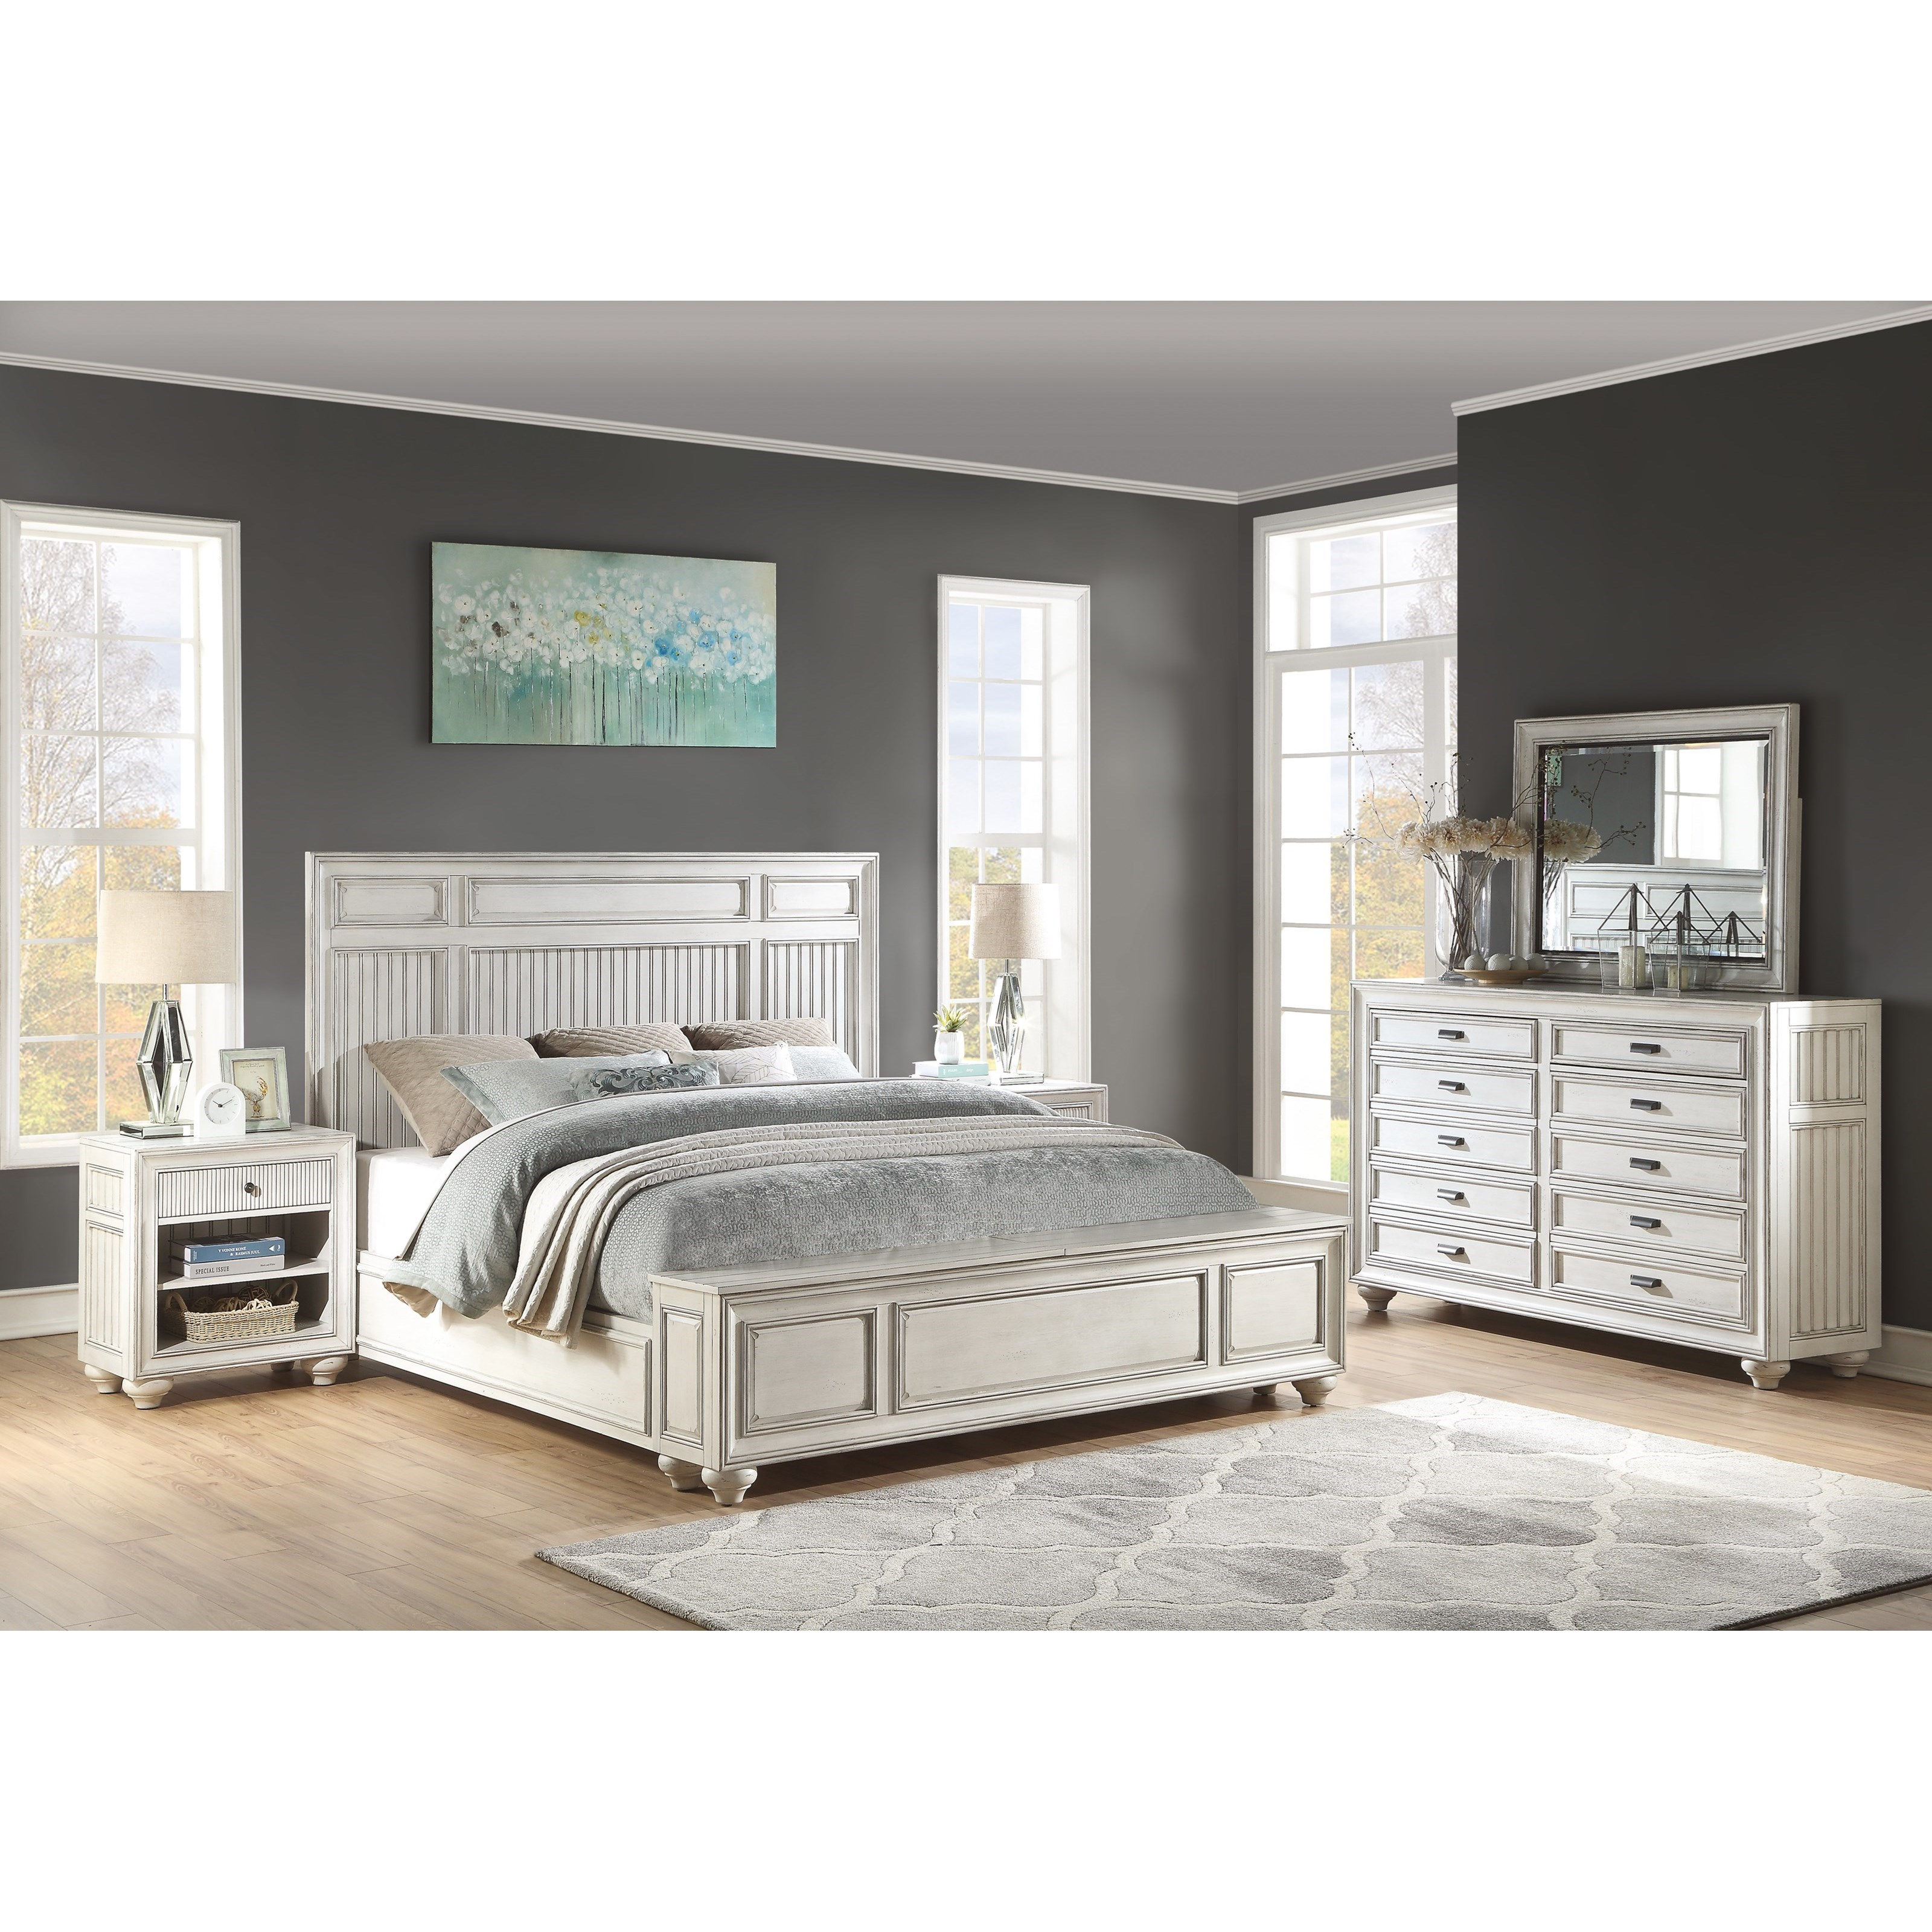 Harmony Queen Bedroom Group by Flexsteel Wynwood Collection at Northeast Factory Direct